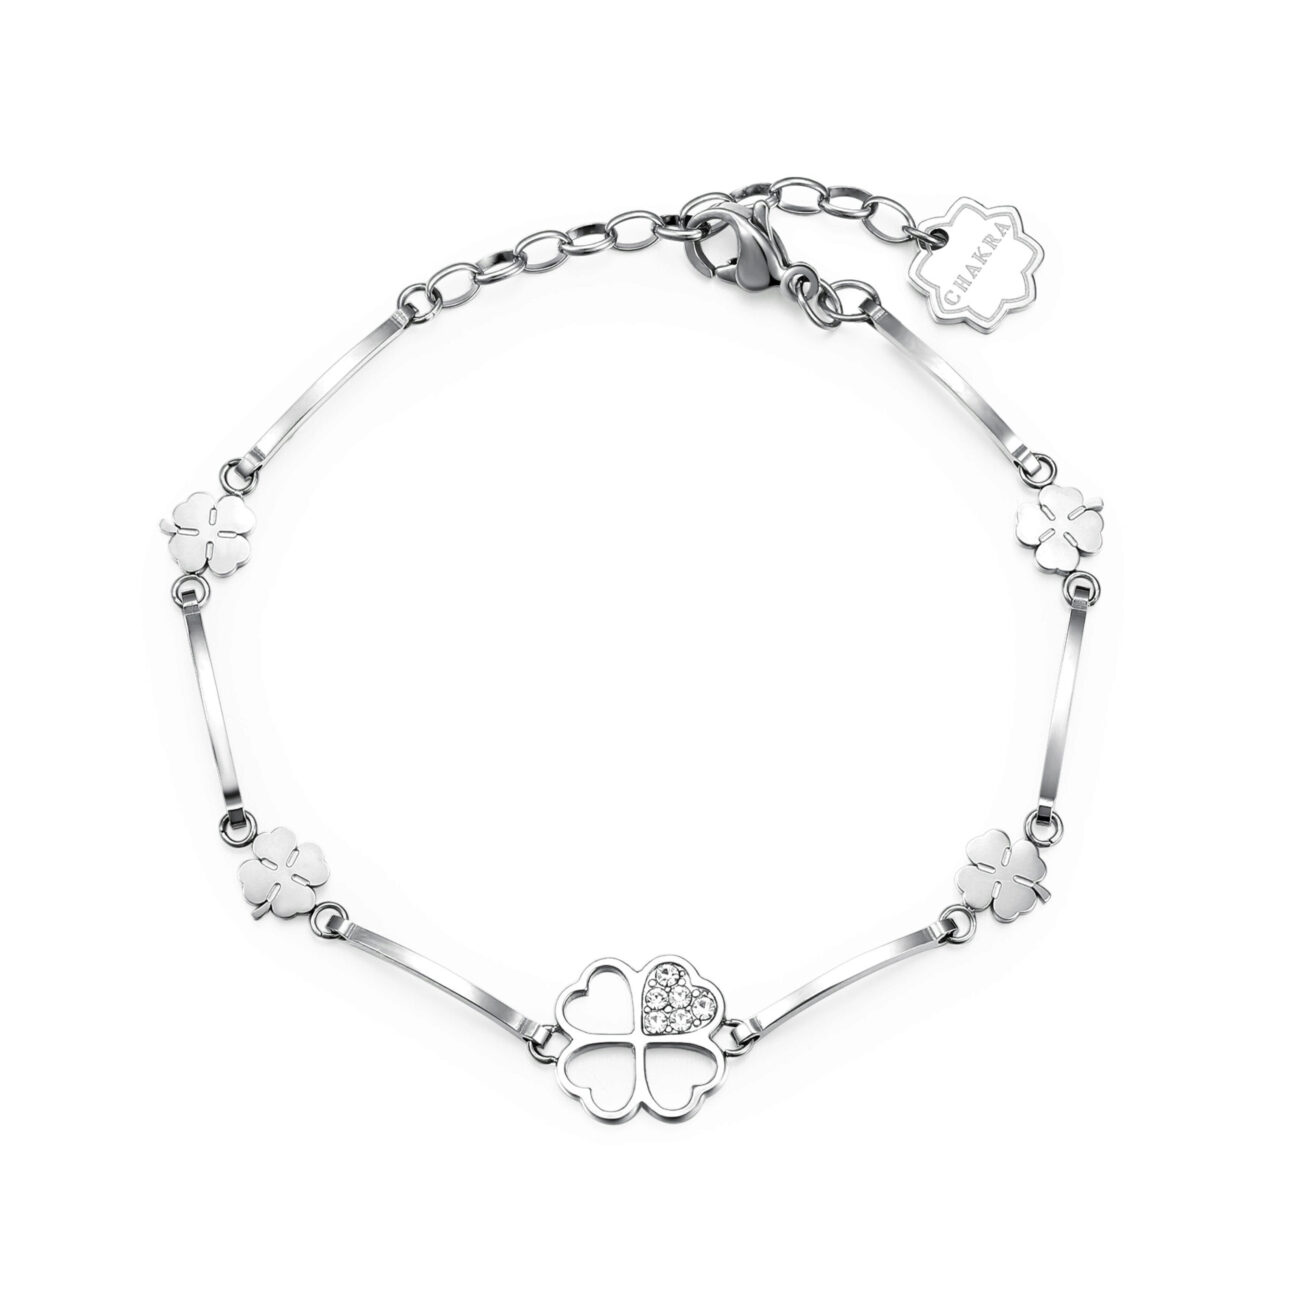 4-LEAF CLOVER: COURAGE, LUCK, LIFE ENGRAVING:Lucky you (back)If you want something you've never had, you must be willing to do something you've never done.Those who lack courage, lack success.Get ready to take a leap of faith, life on the other side is pretty spectacular.316L stainless steel bracelet with crystals